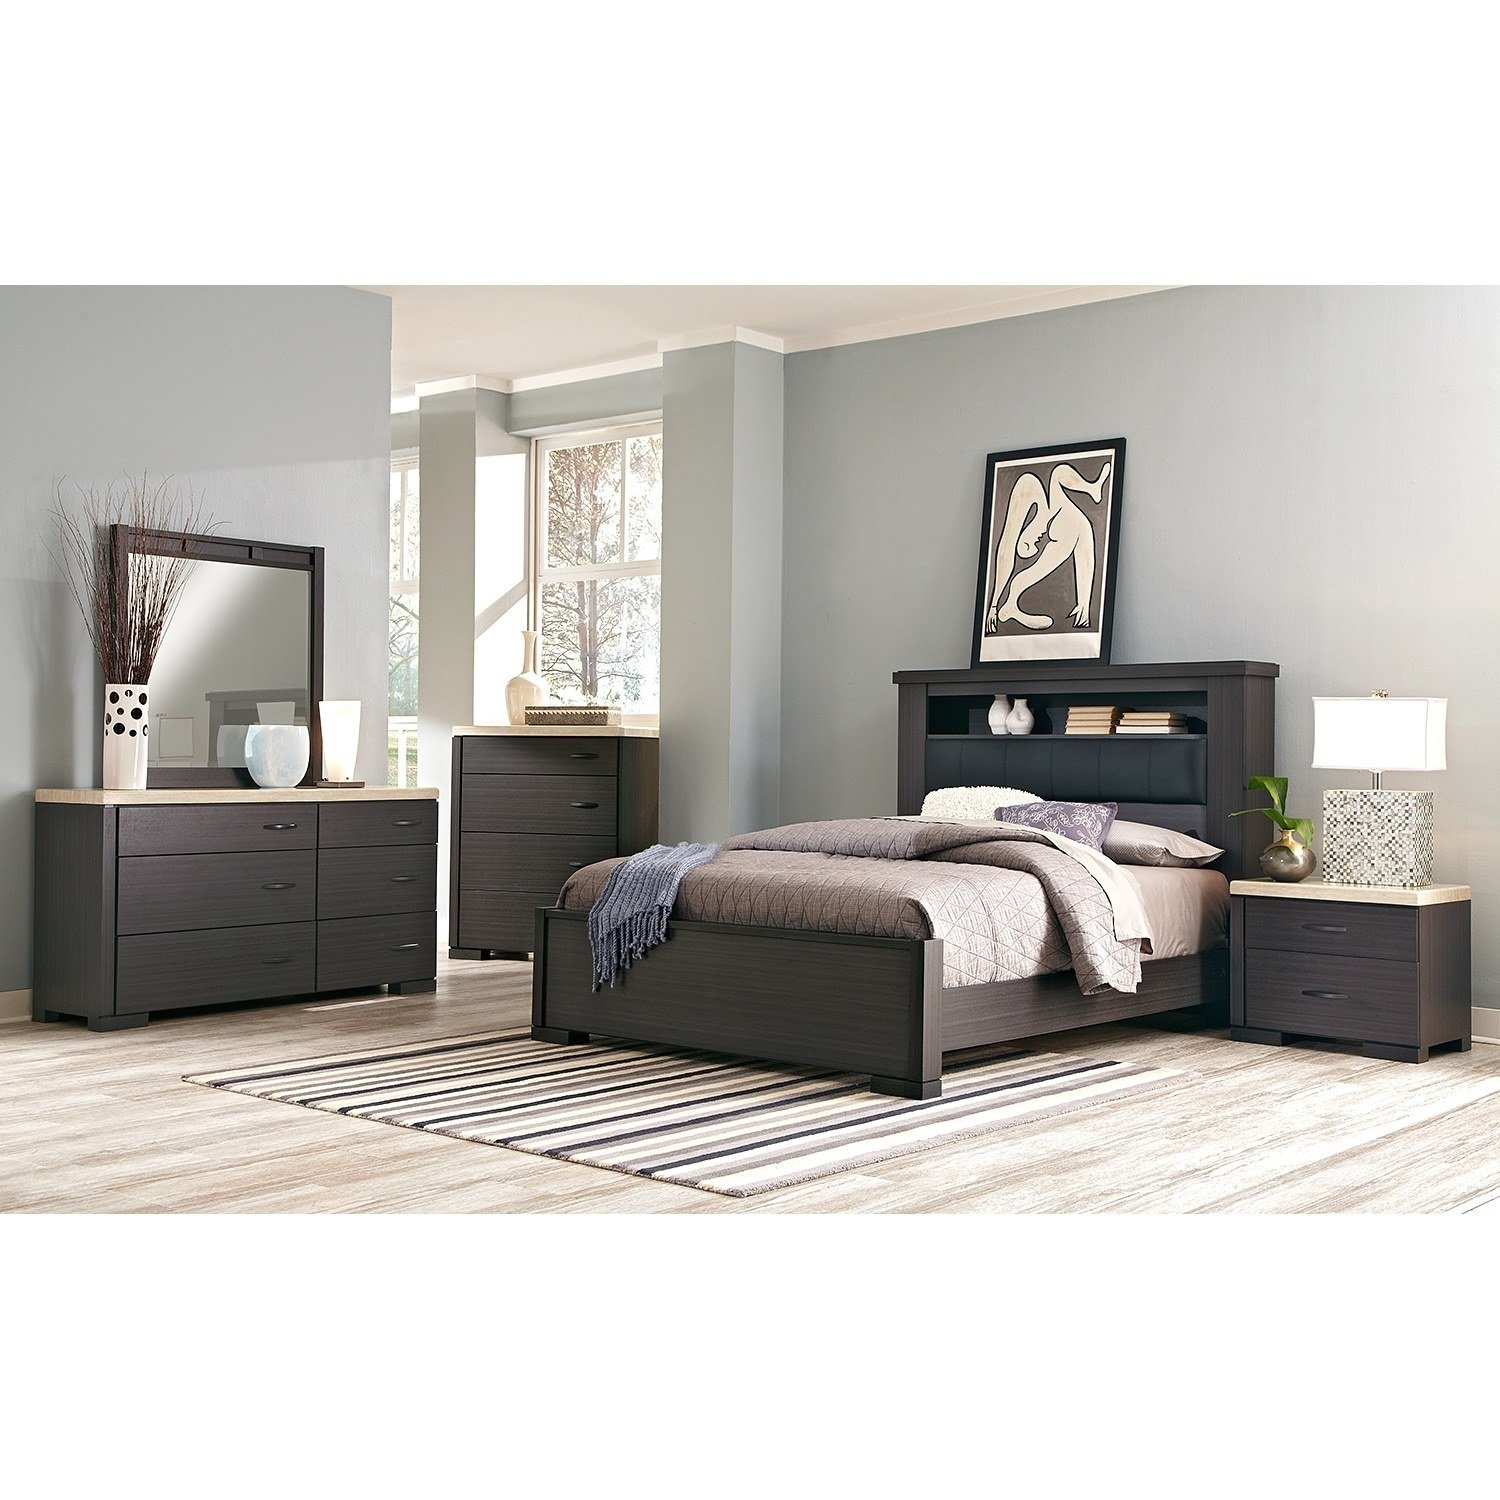 Best Camino 7 Piece Queen Bedroom Set Charcoal And Ivory With Pictures